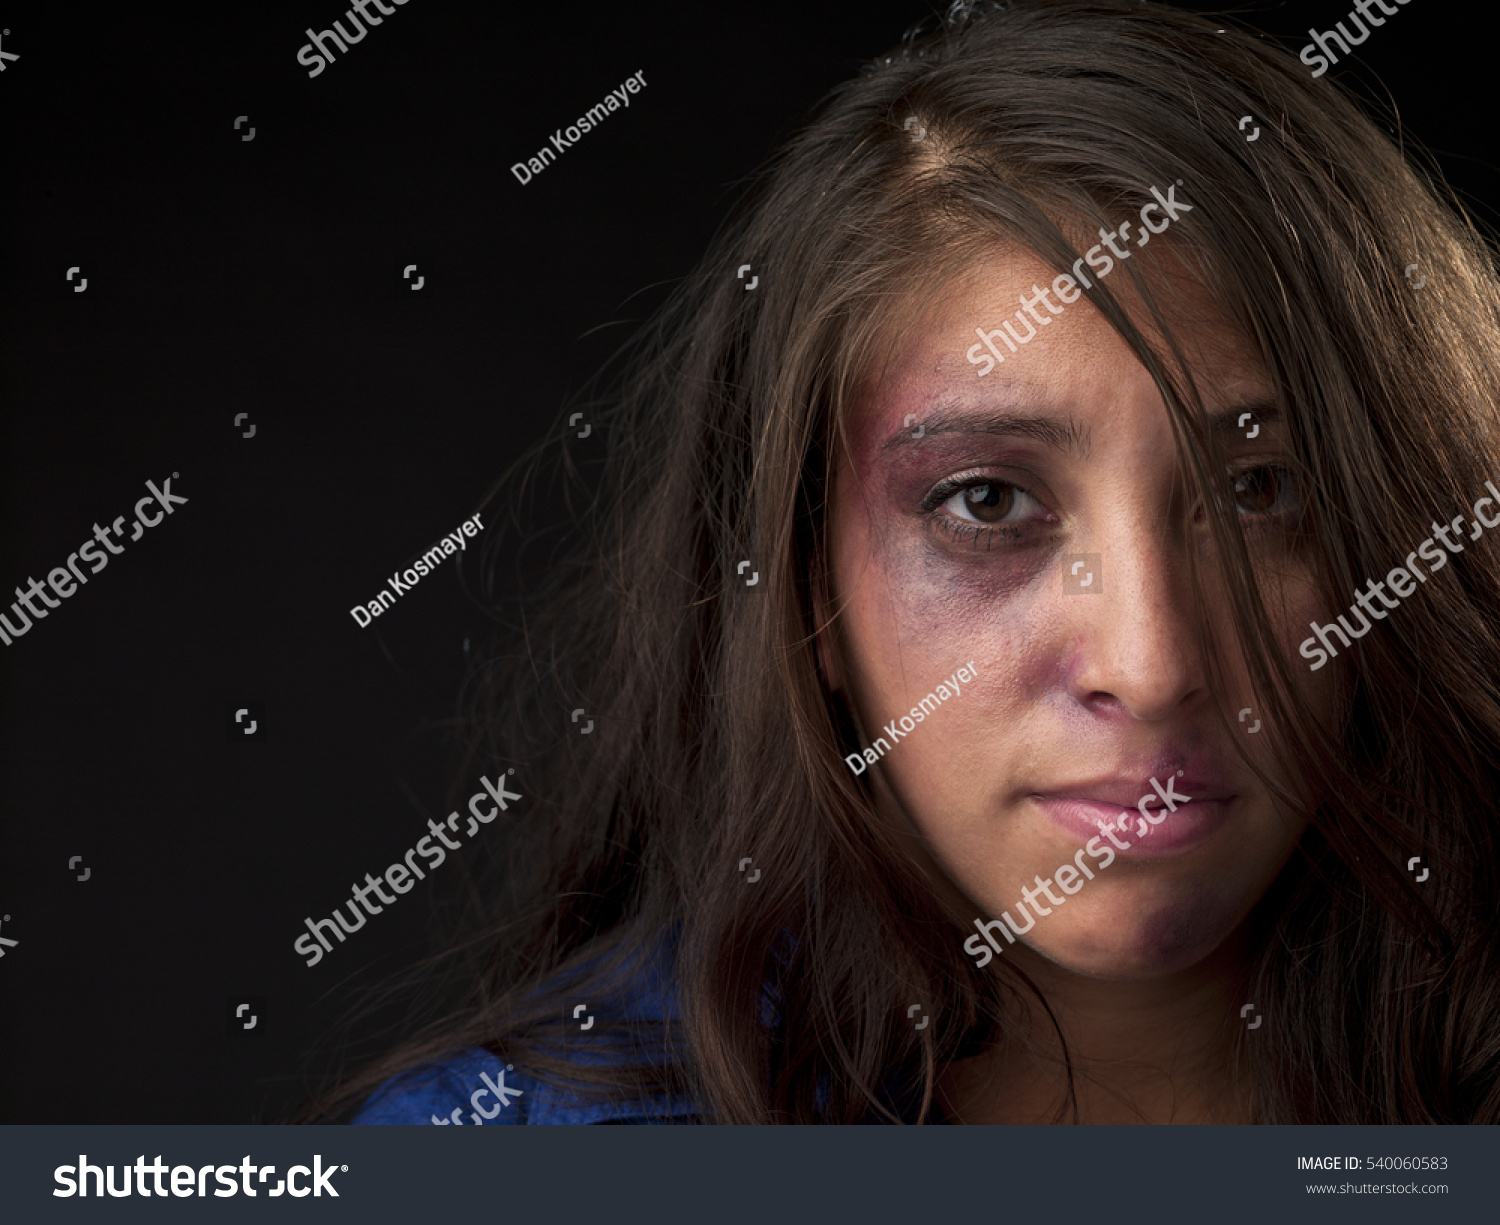 woman body facial injuries which can stock photo (royalty free